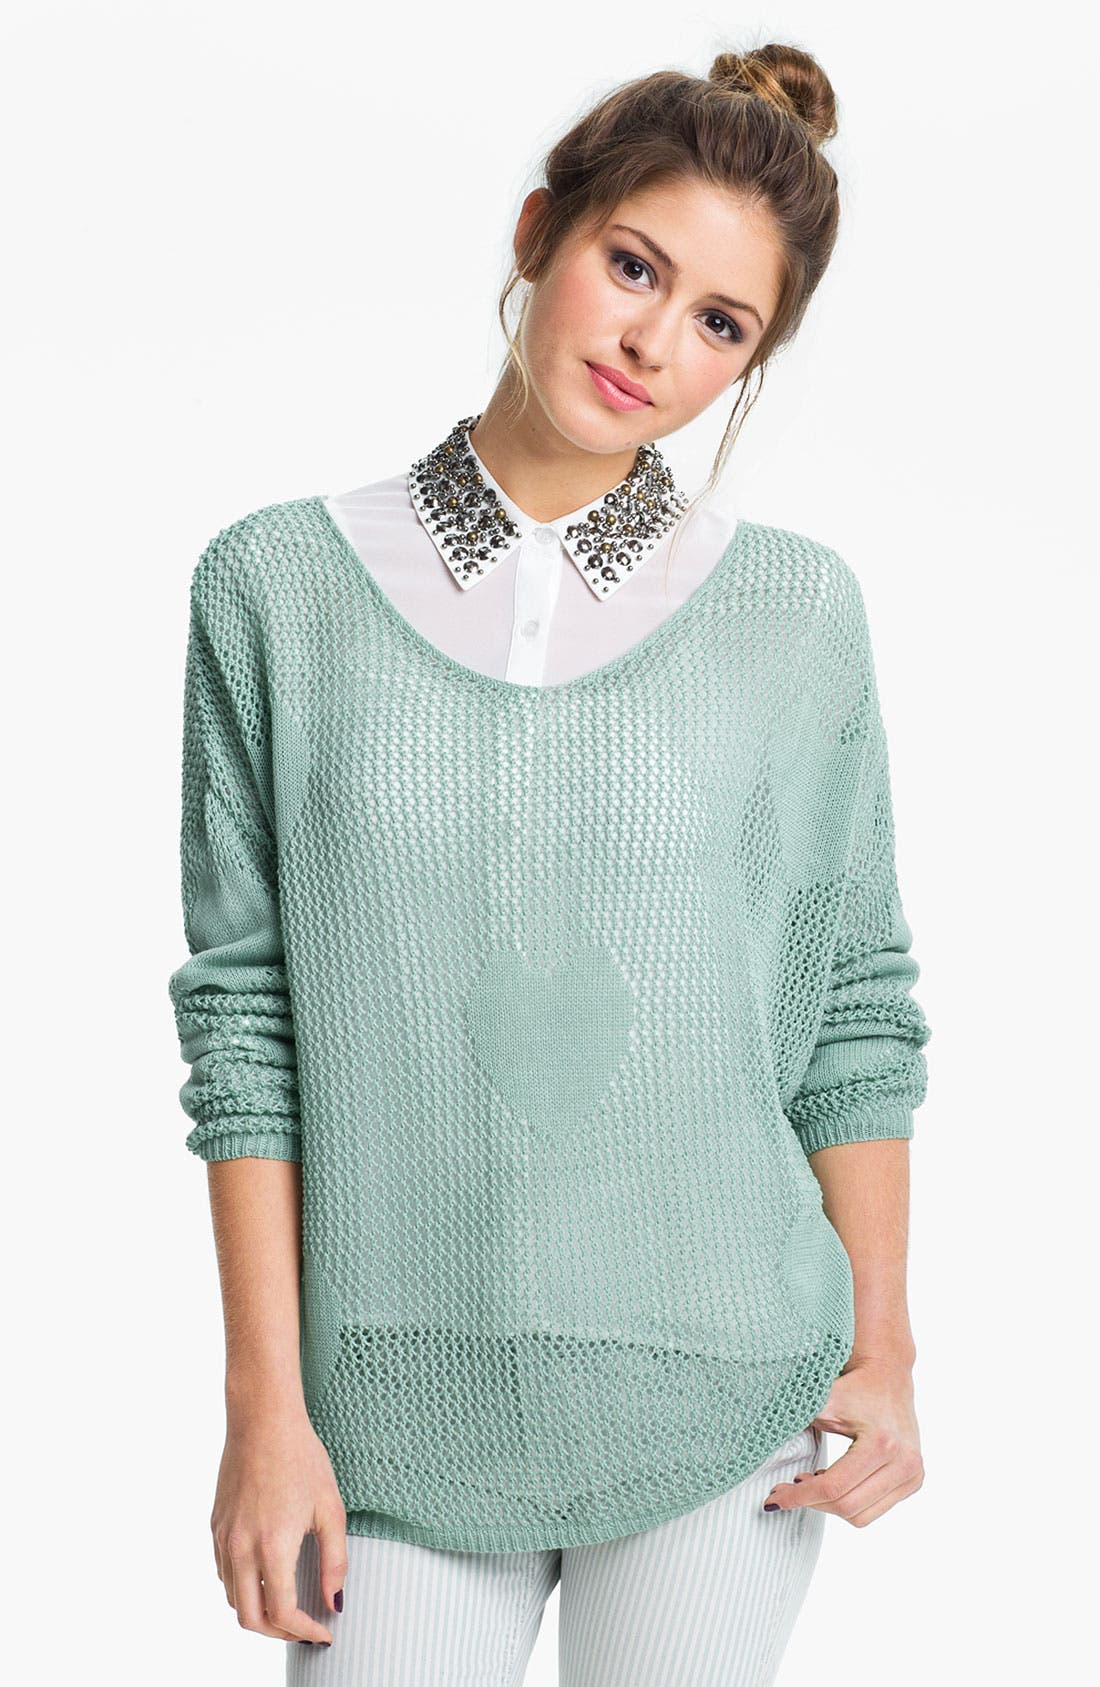 Alternate Image 1 Selected - Double Zero Heart Knit Sheer Sweater (Juniors)